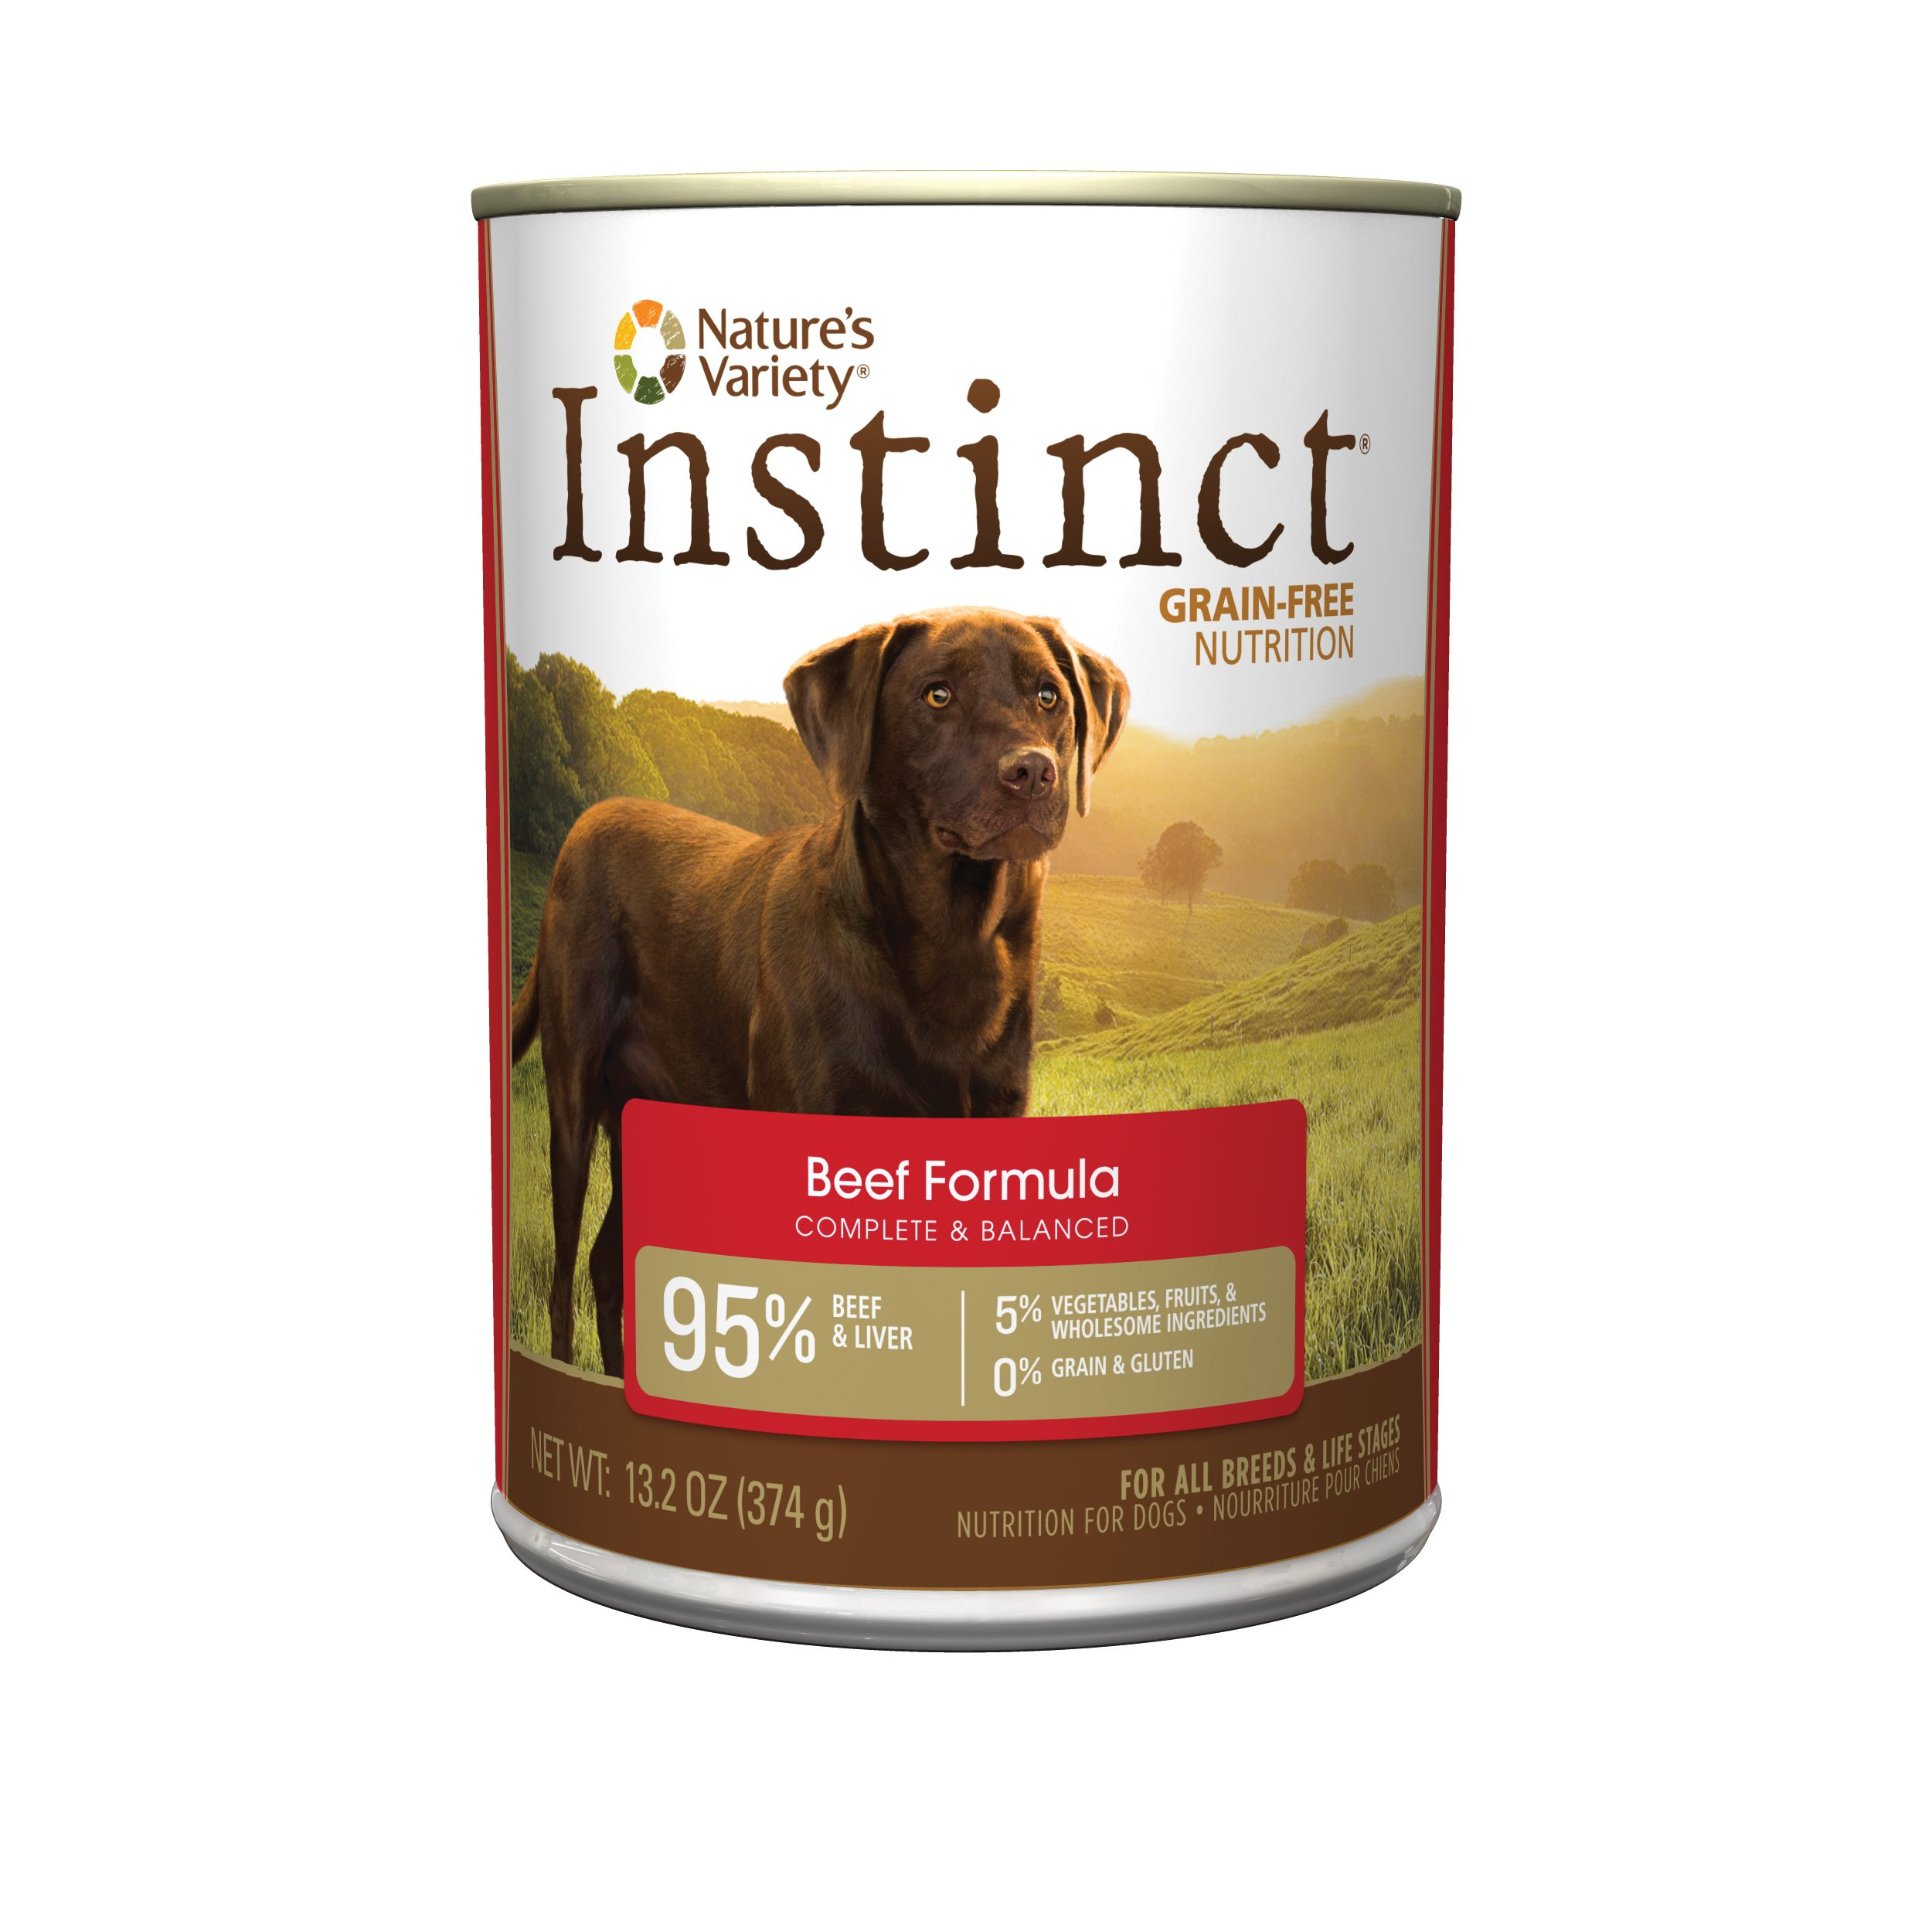 Nature'S Variety Instinct Grain Free Beef Formula Natural Wet Canned Dog Food By, 13.2 Oz. Cans (Case Of 12) by Nature's Variety